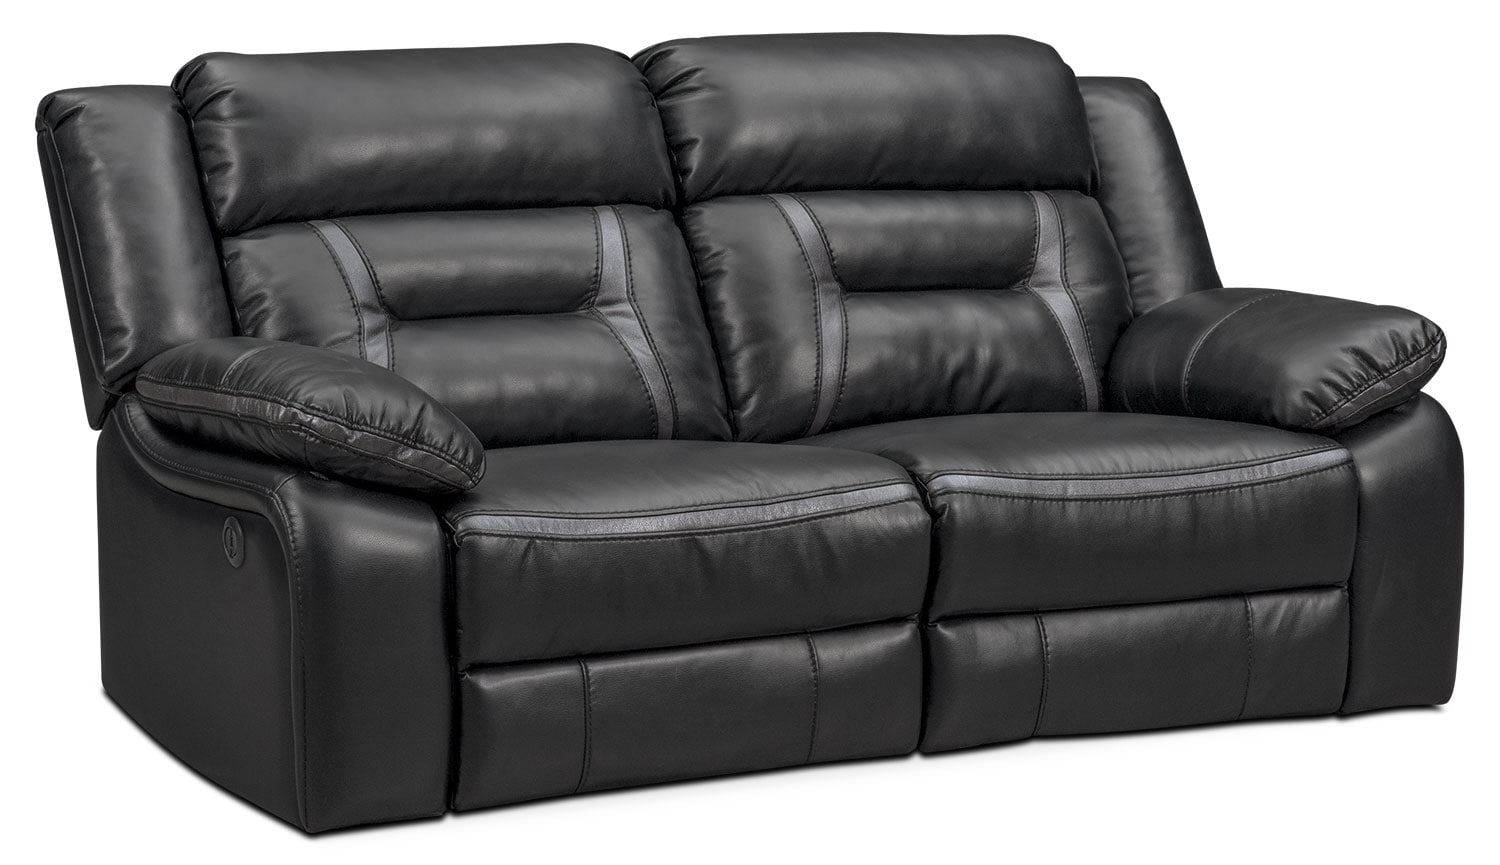 Remi 2-Piece Power Reclining Sofa - Black